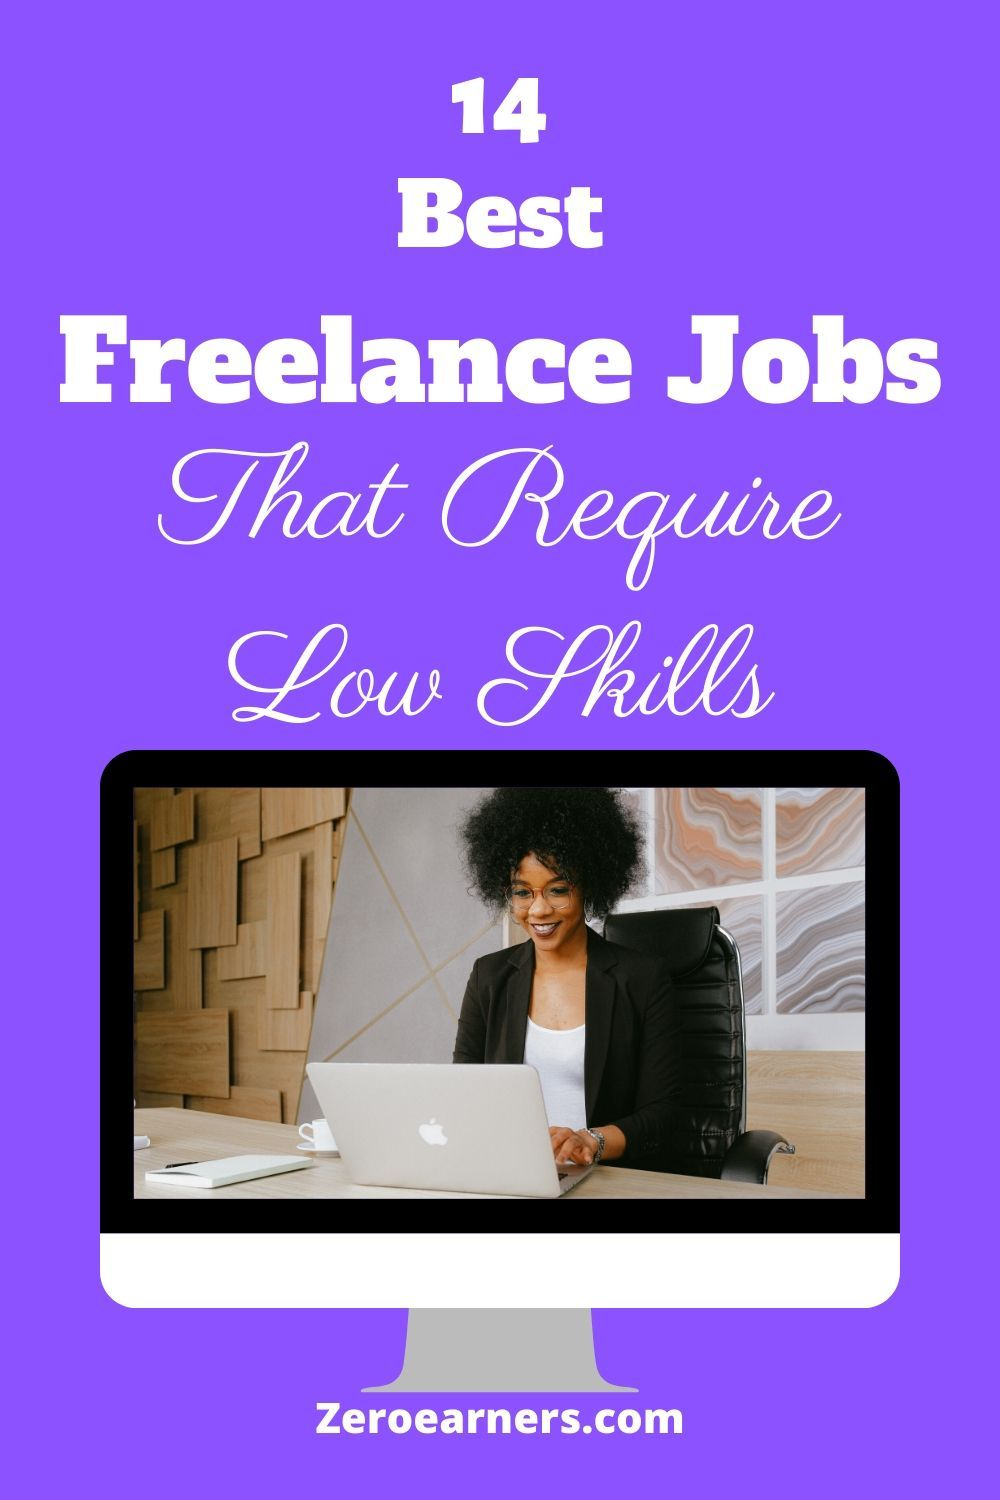 14 Best Freelance Jobs That Require Low Skills in 2020